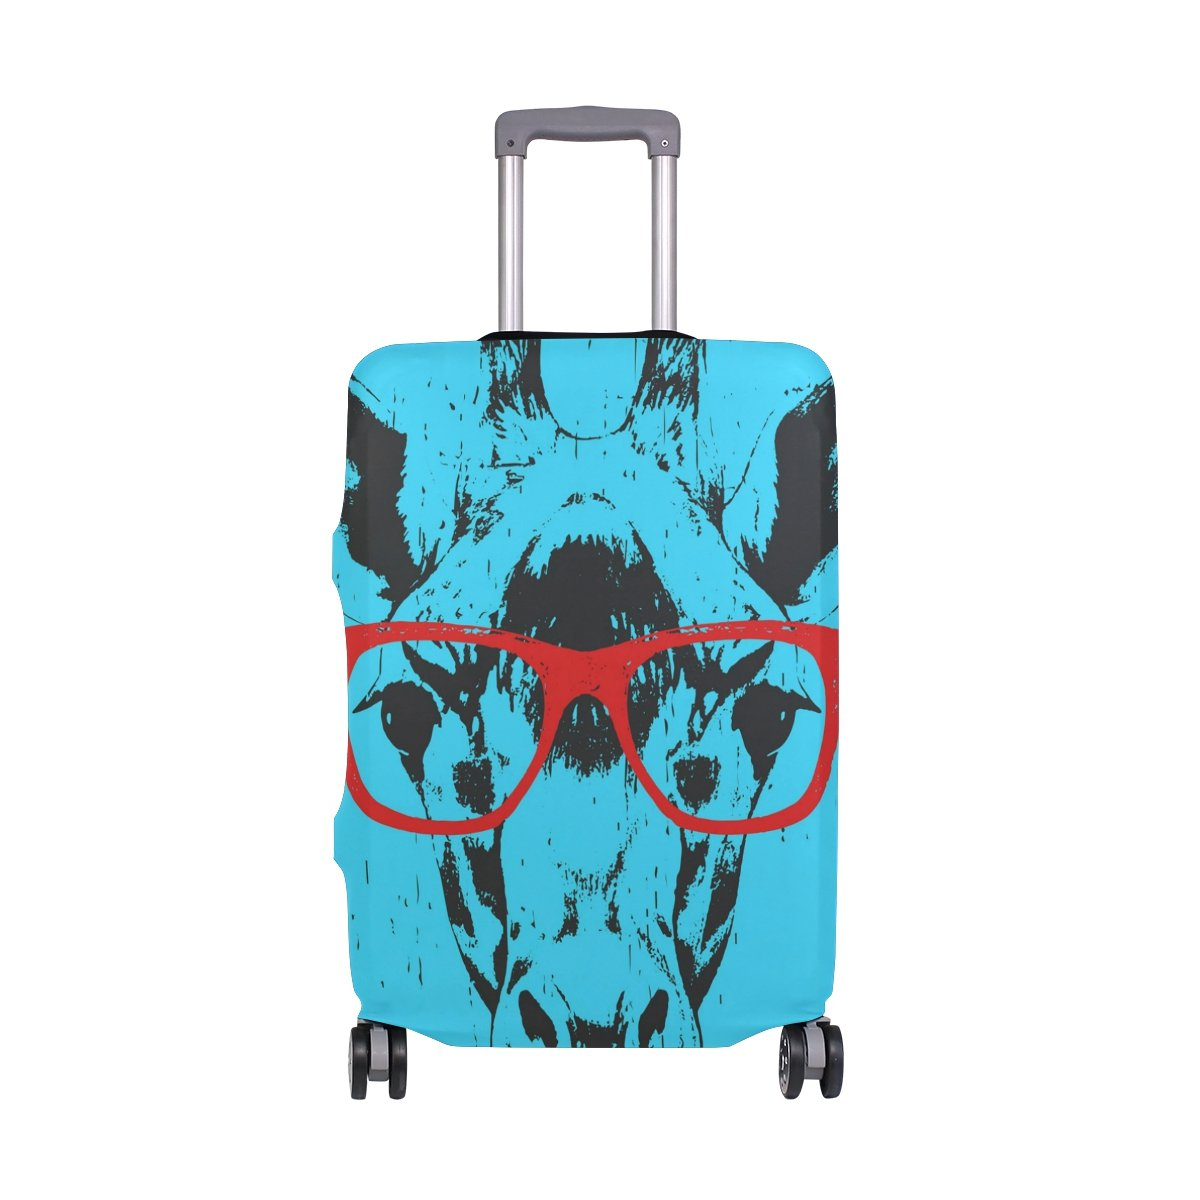 GIOVANIOR Portrait Of Giraffe With Glasses Luggage Cover Suitcase Protector Carry On Covers by GIOVANIOR